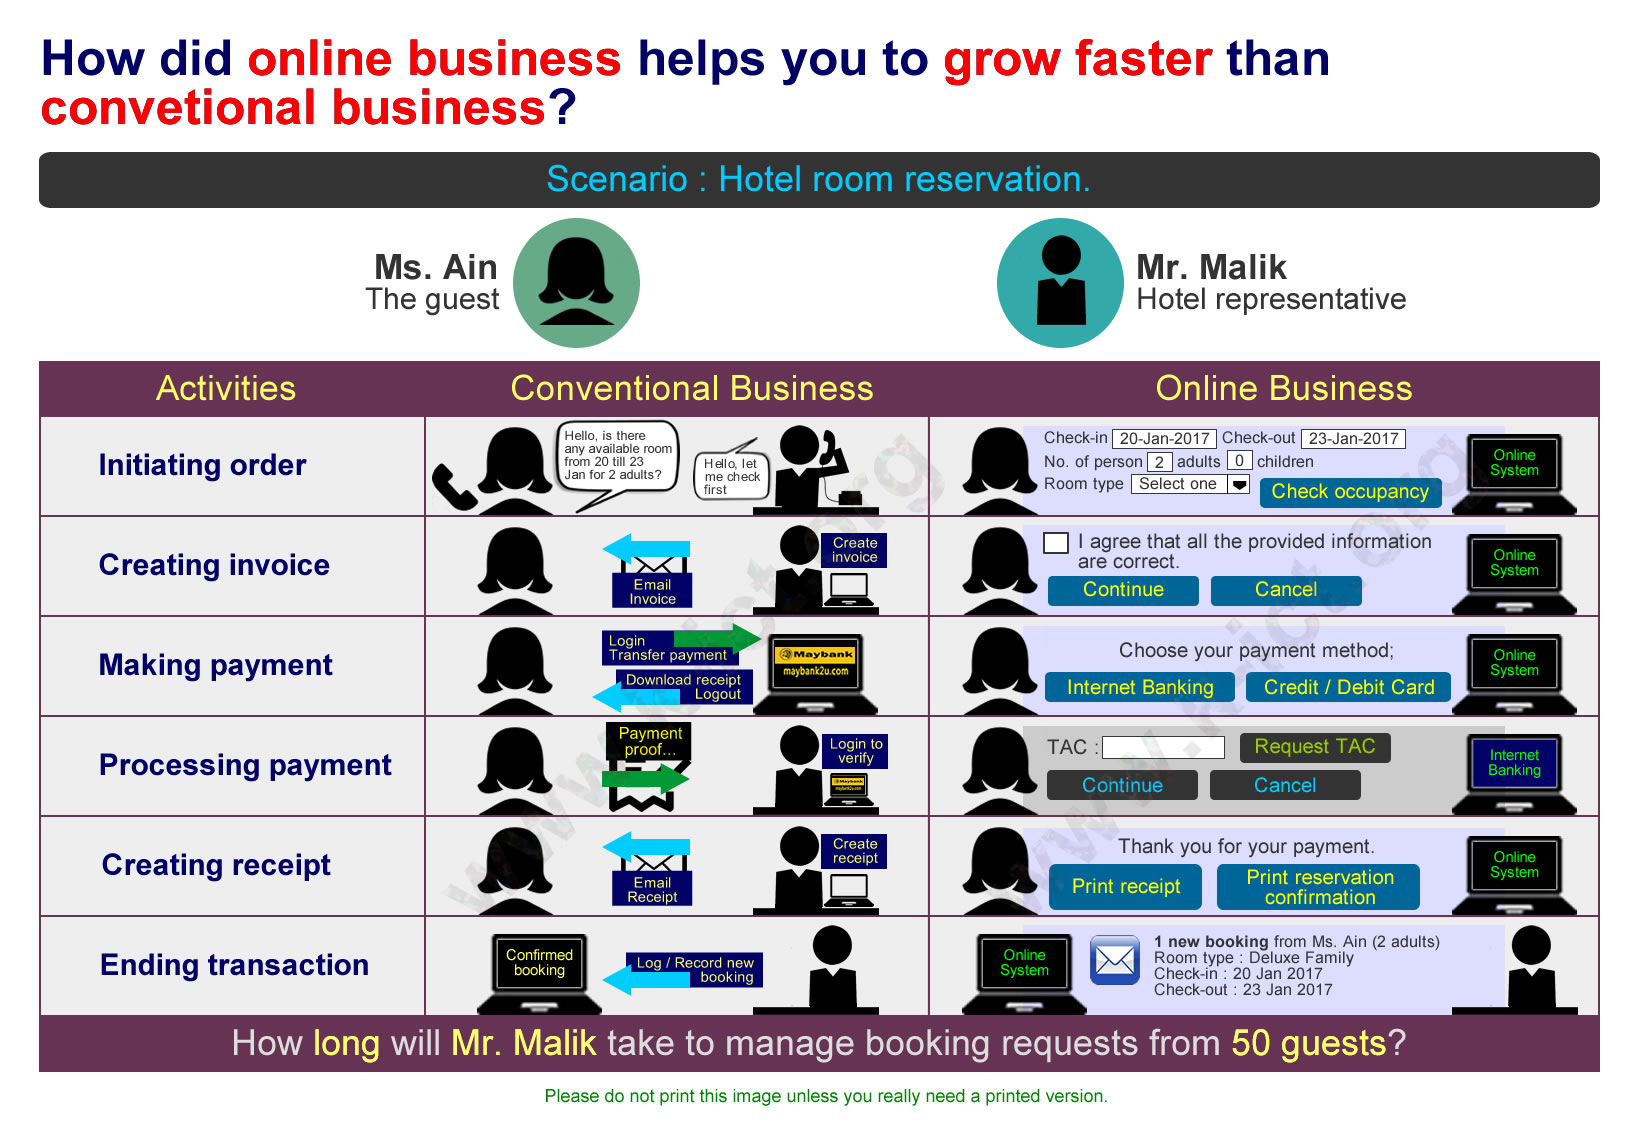 Online business helps you to grow faster than conventional business